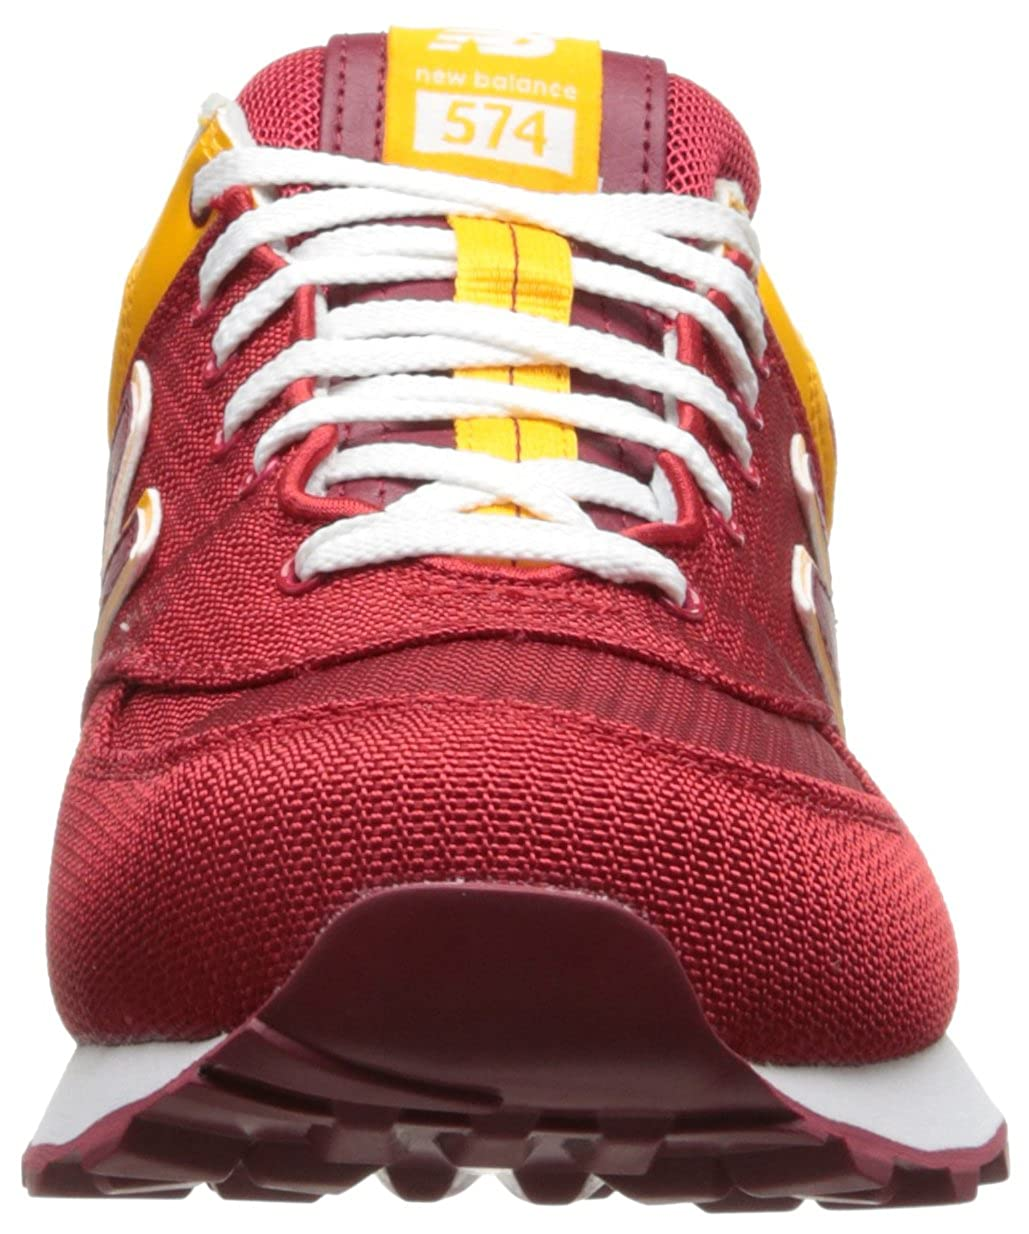 New Balance ML574P, PPR red, 9, 5: Amazon.co.uk: Shoes & Bags